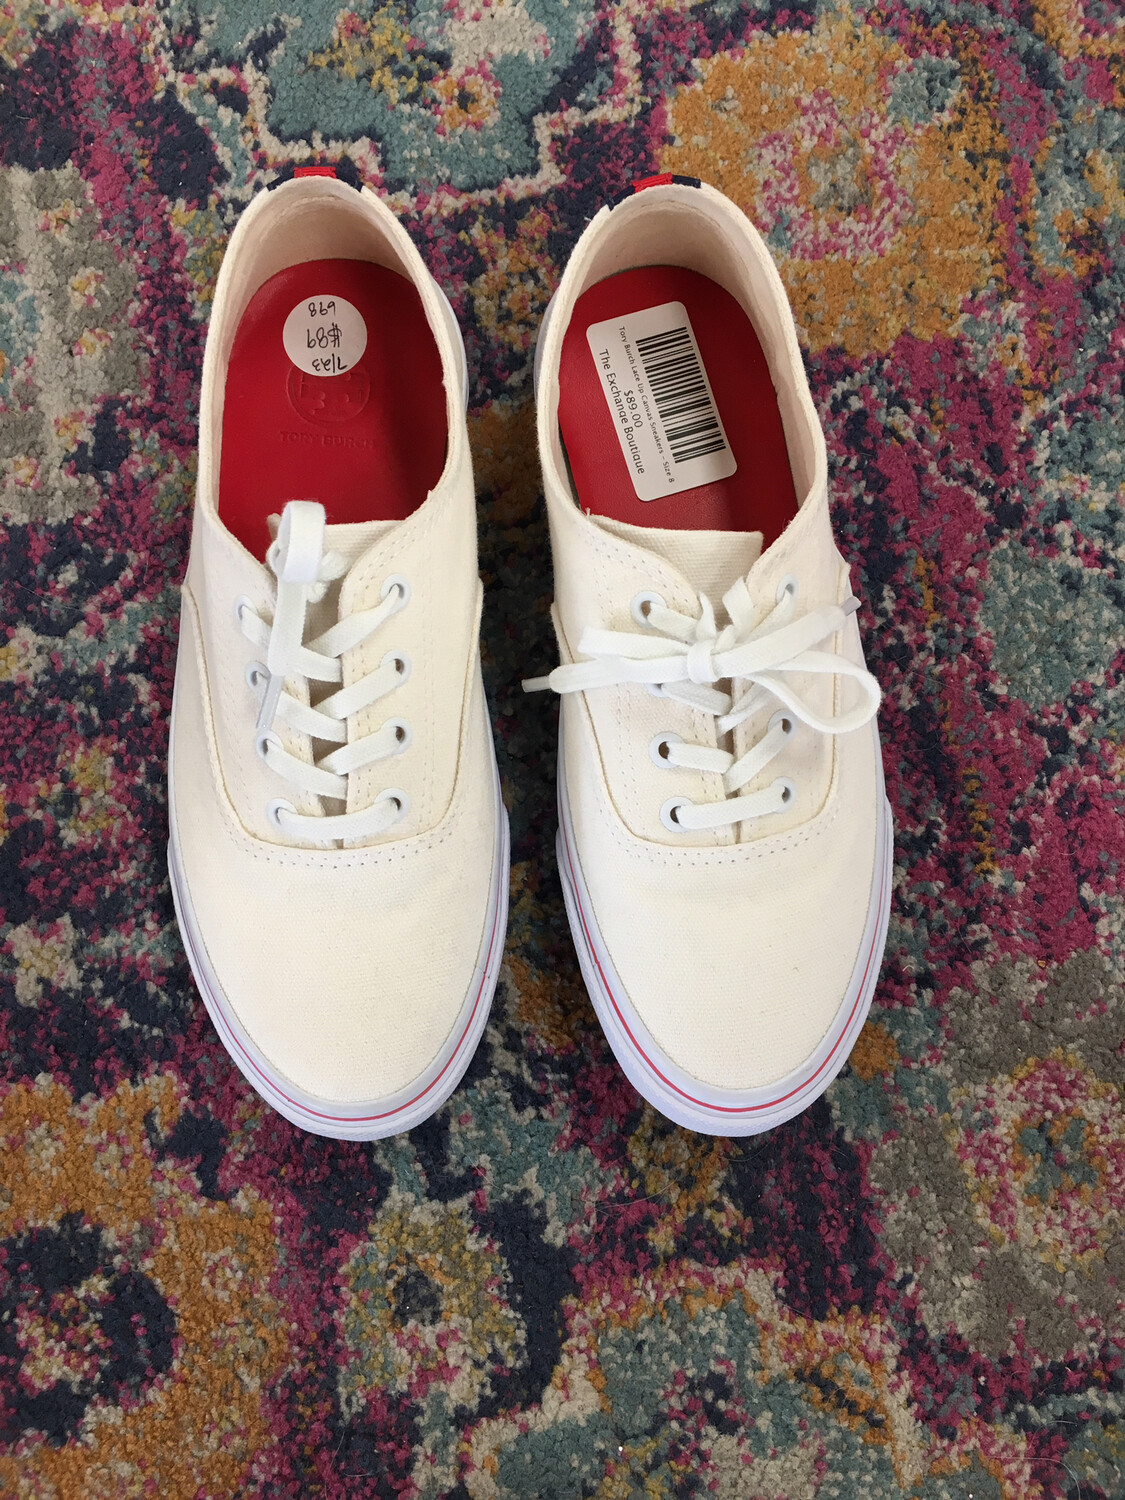 Tory Burch Lace Up Canvas Sneakers - Size 8